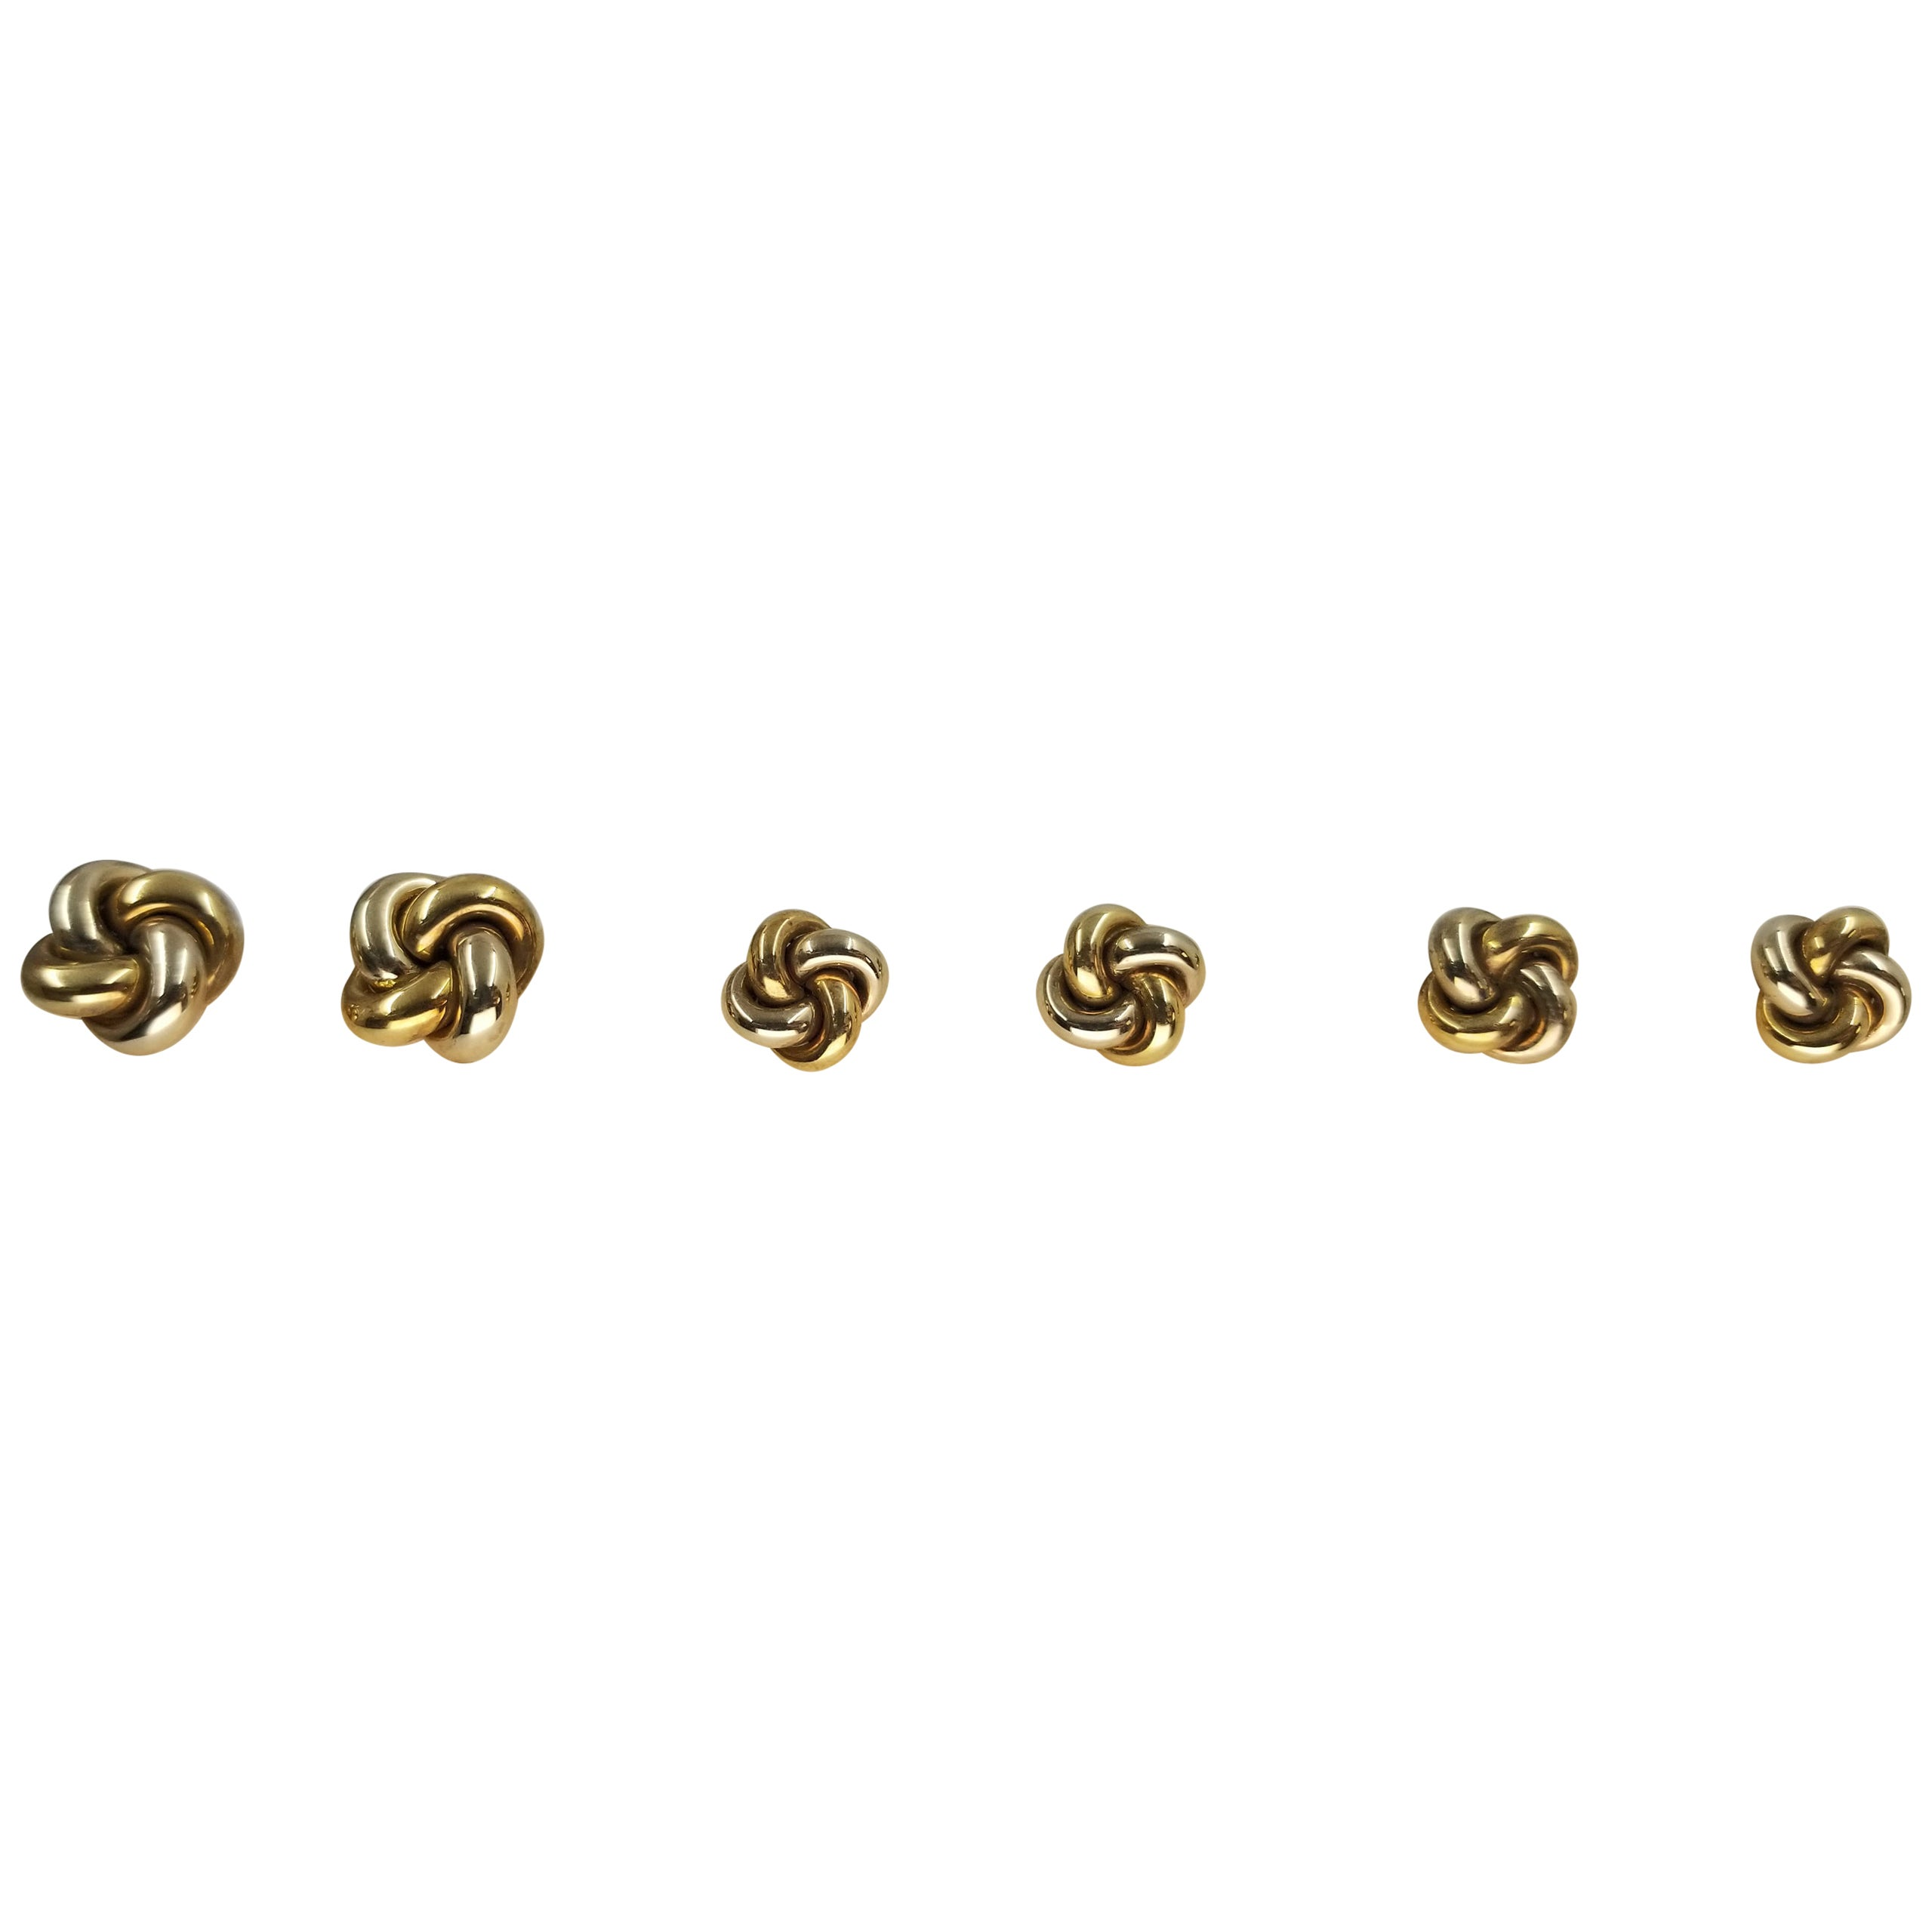 14 Karat White and Yellow Gold Knot Cufflinks and Tuxedo Studs